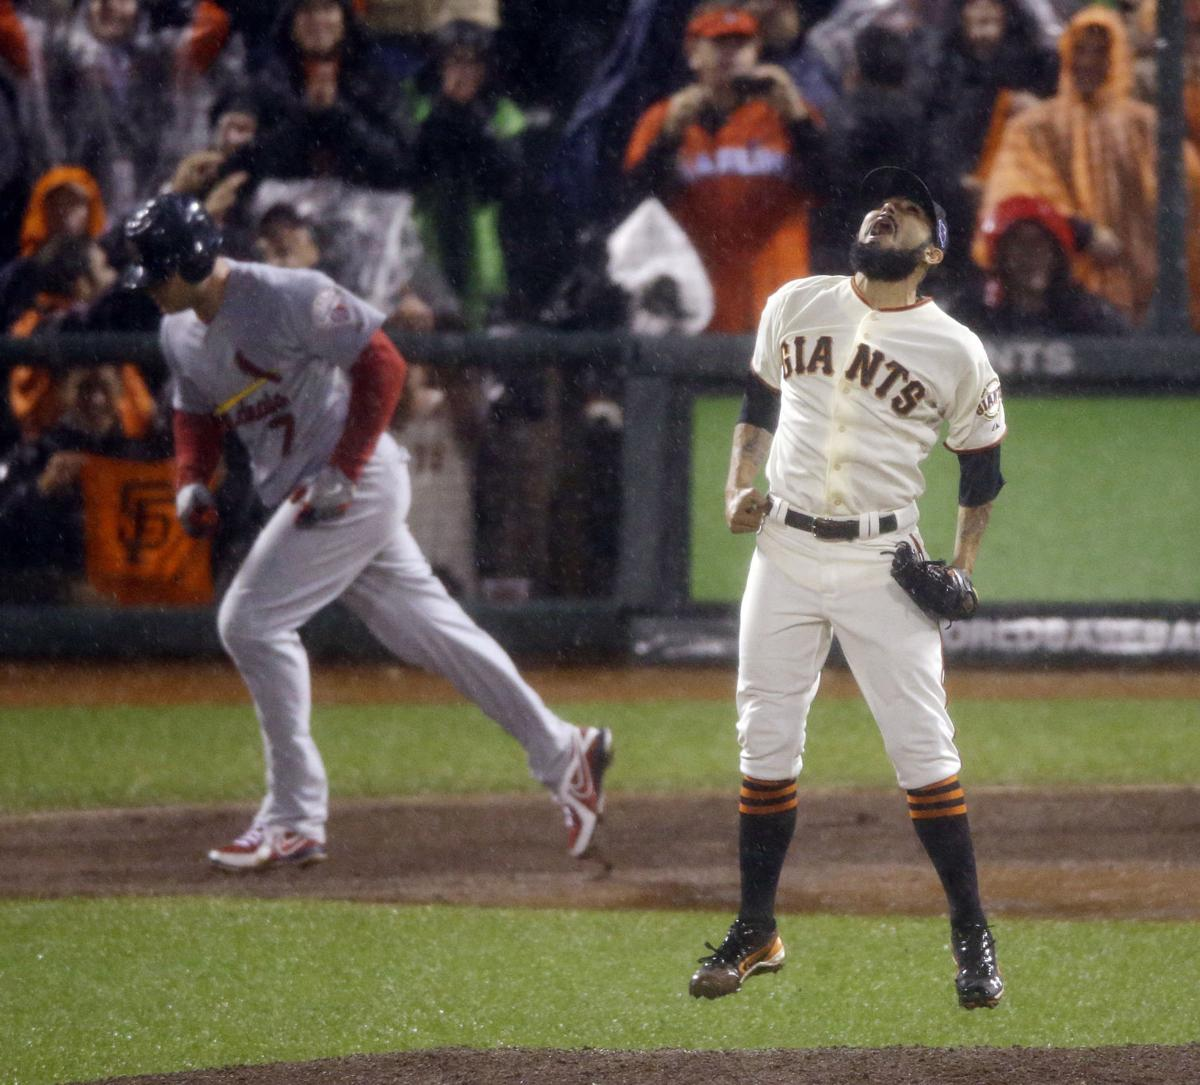 Giants finish off Cardinals in Game 7 rout